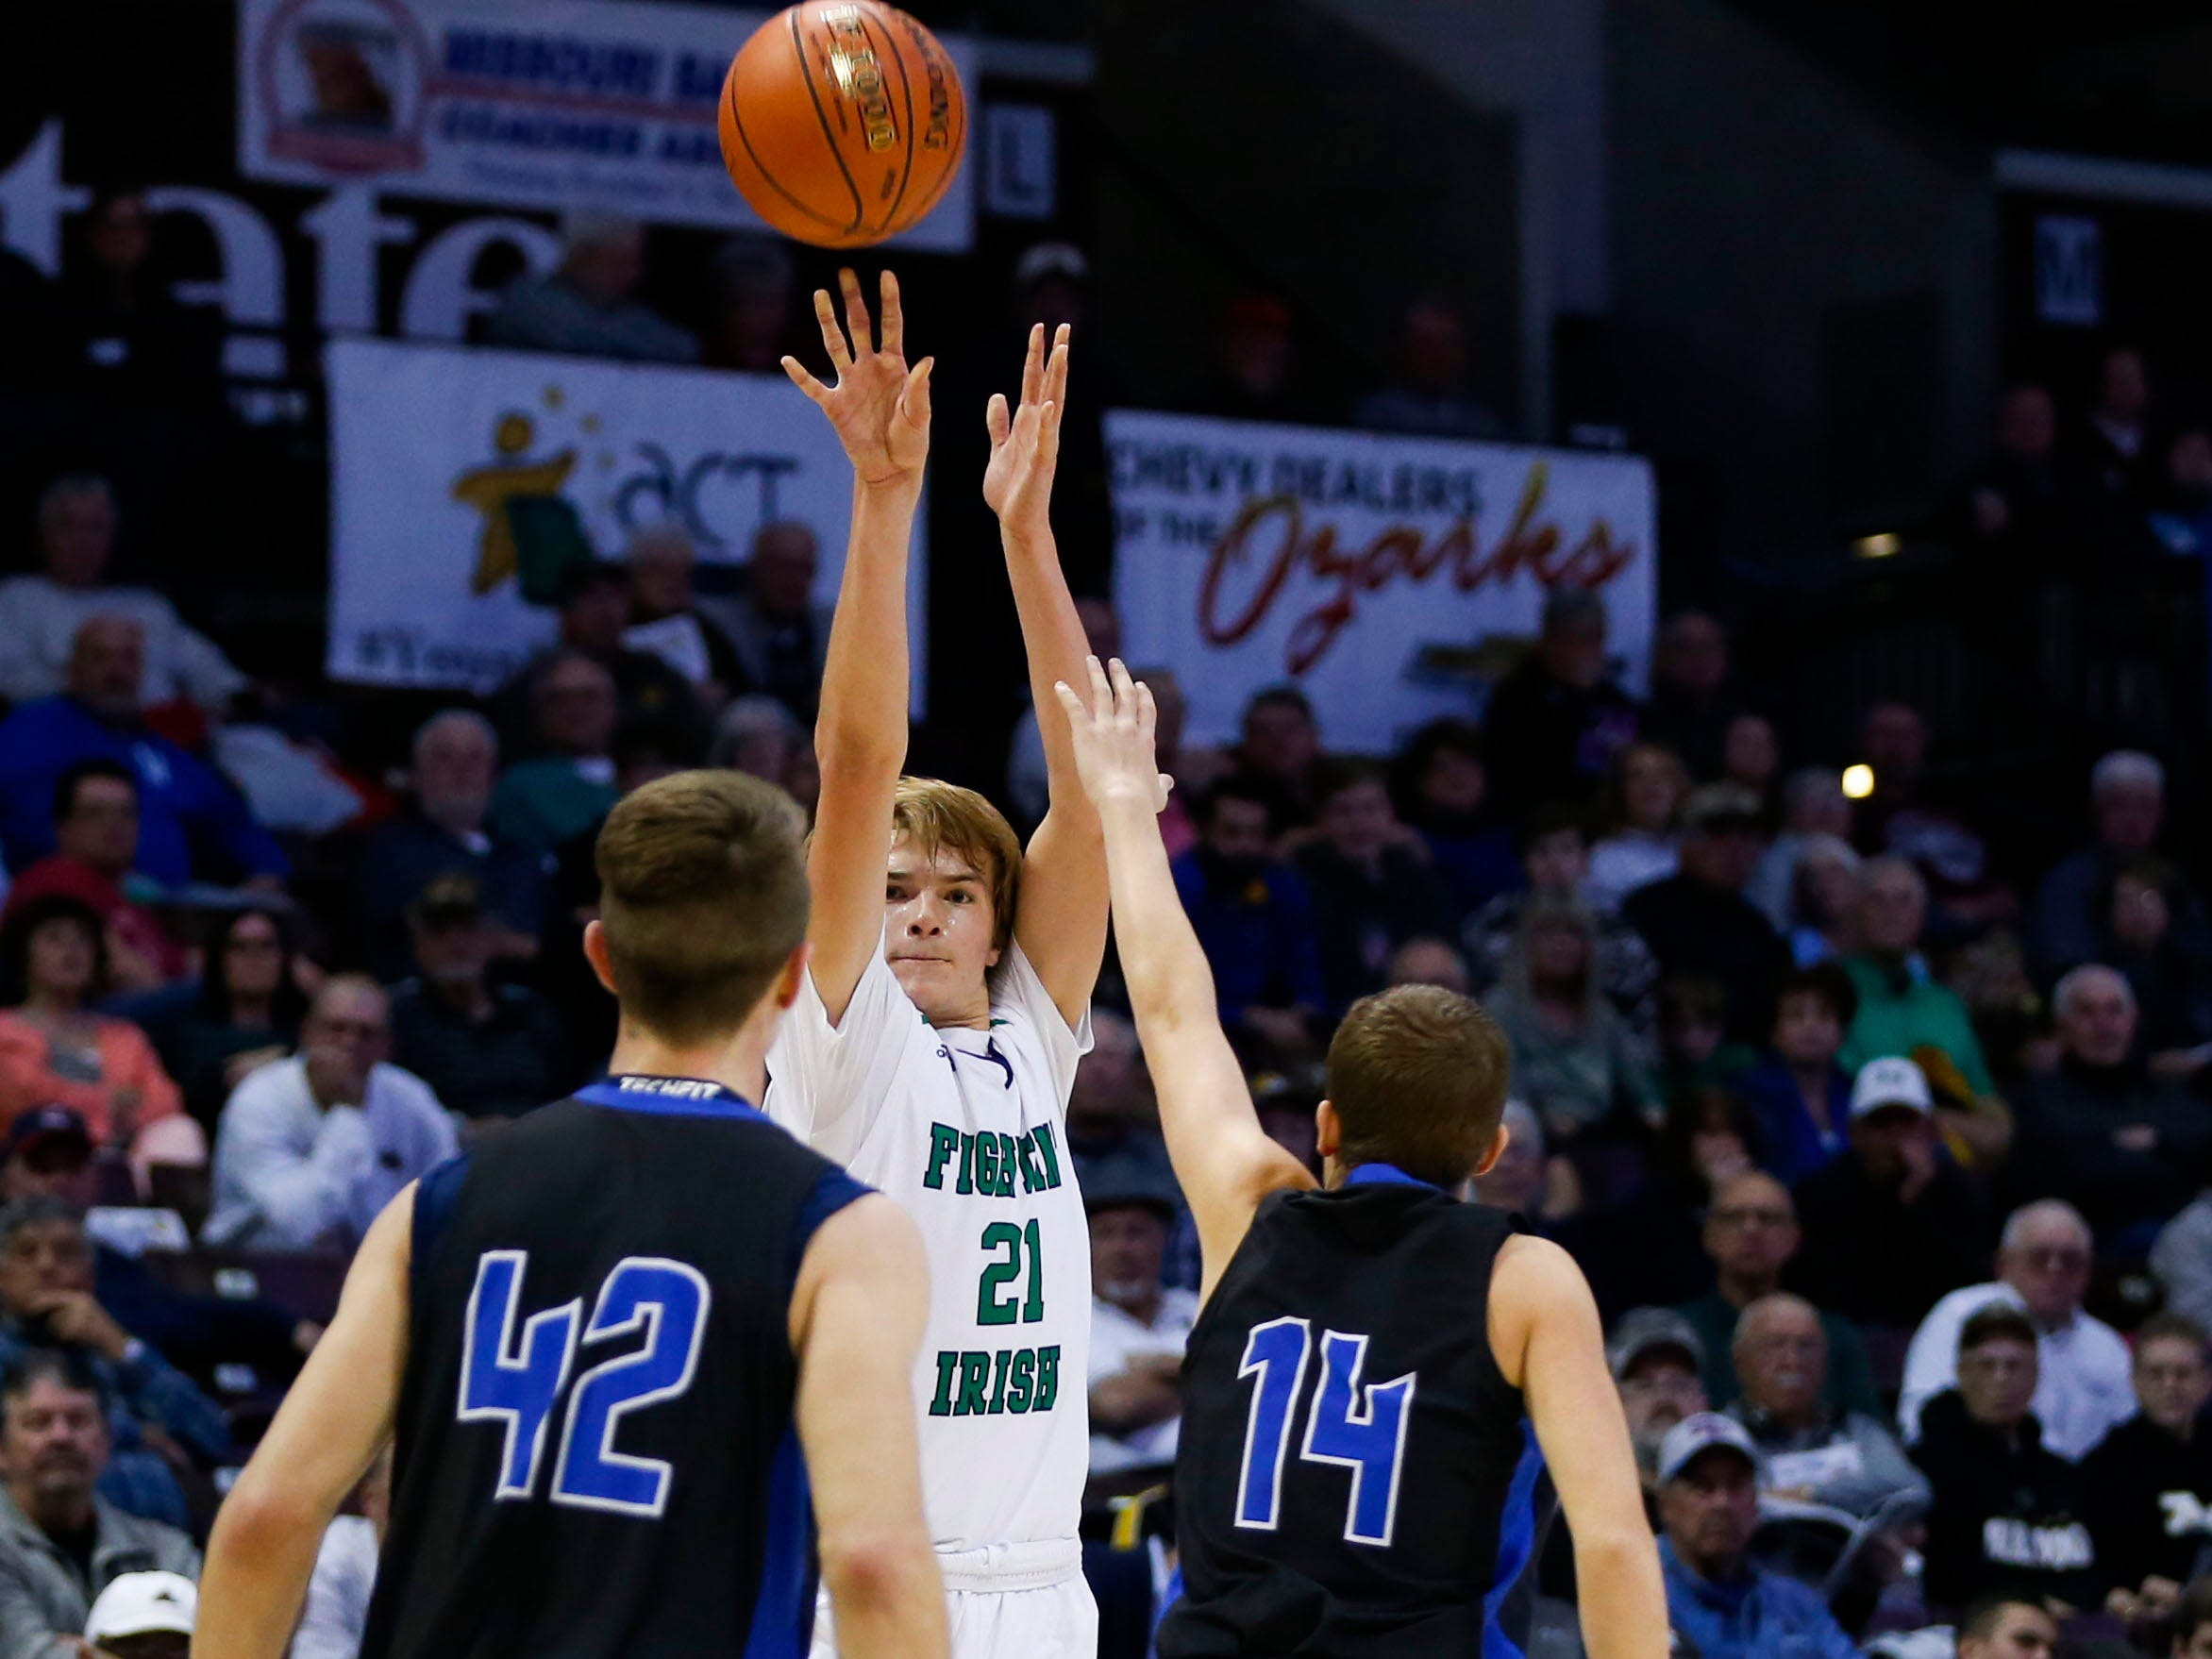 Springfield Catholic's Charlie O'Reilly shoots a three-pointer over St. Paul Lutheran's Justin Griffith during the semifinal round of Class 3 state basketball at JQH Arena on Thursday, March 7, 2019.